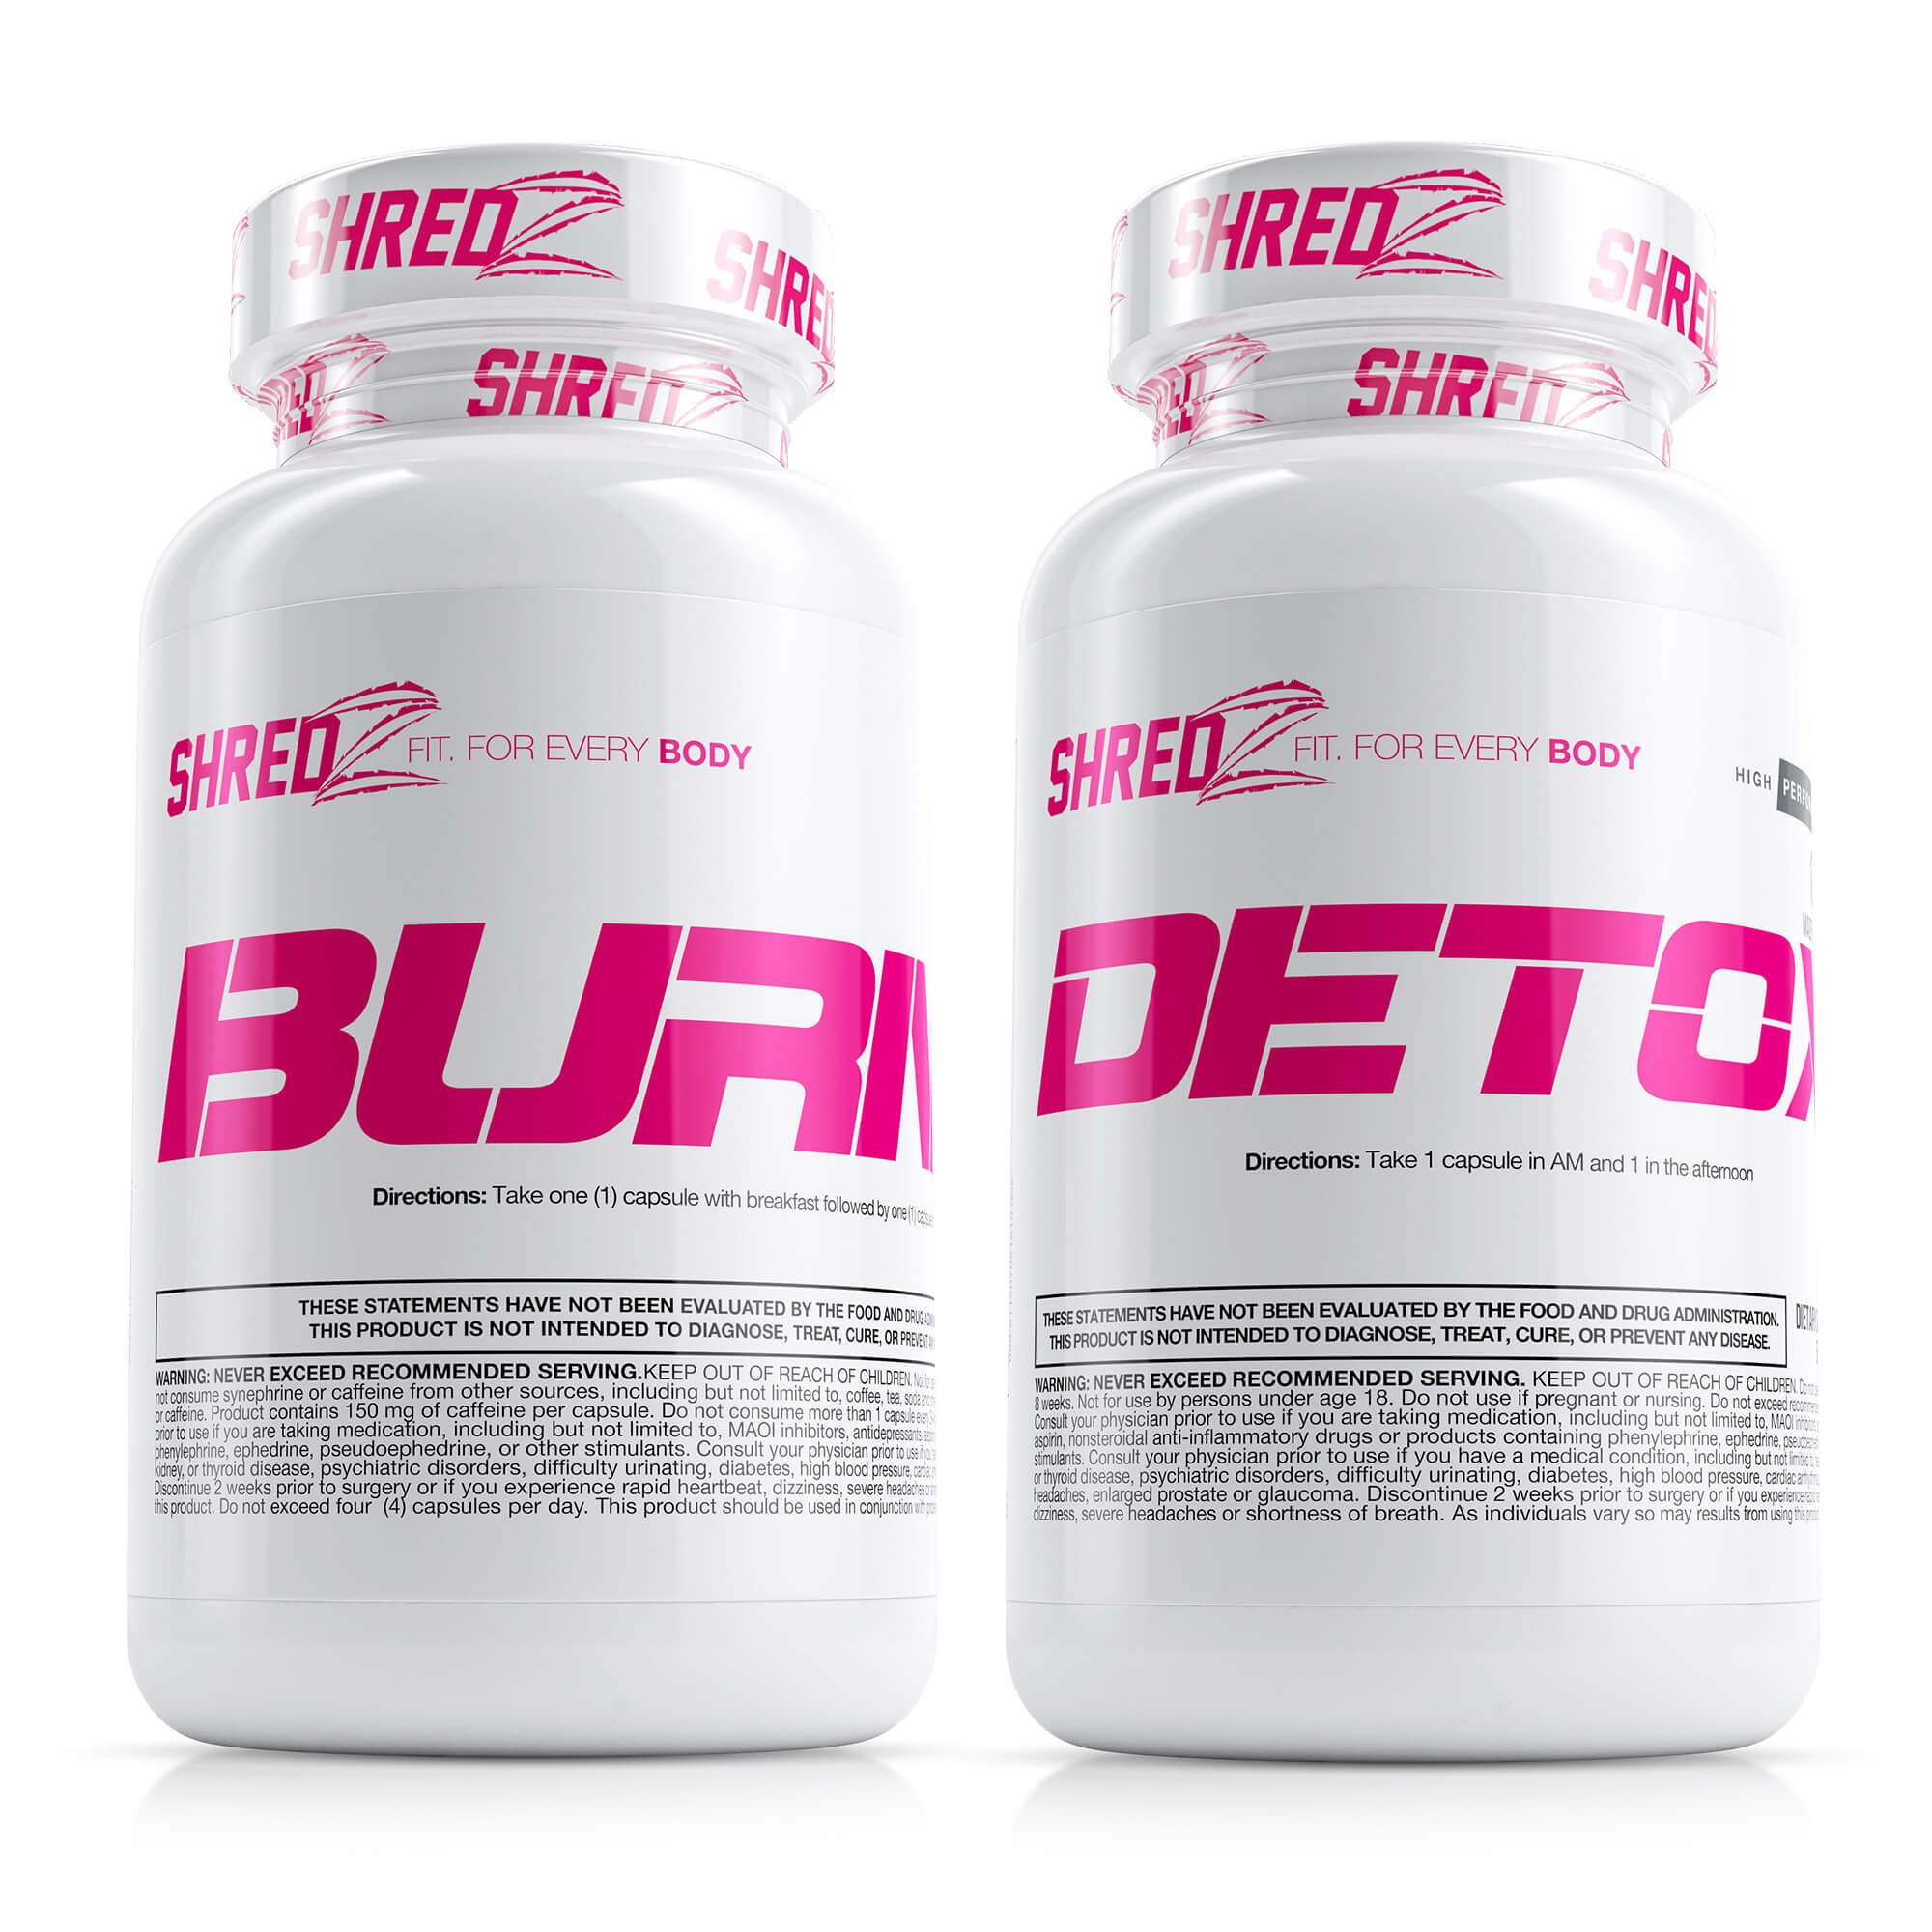 SHREDZ Sexy & Lean Supplement Stack for Women, Lose Weight, Burn Fat, Build Lean Muscle, Best Ingredients (30 Day Supply) by SHREDZ